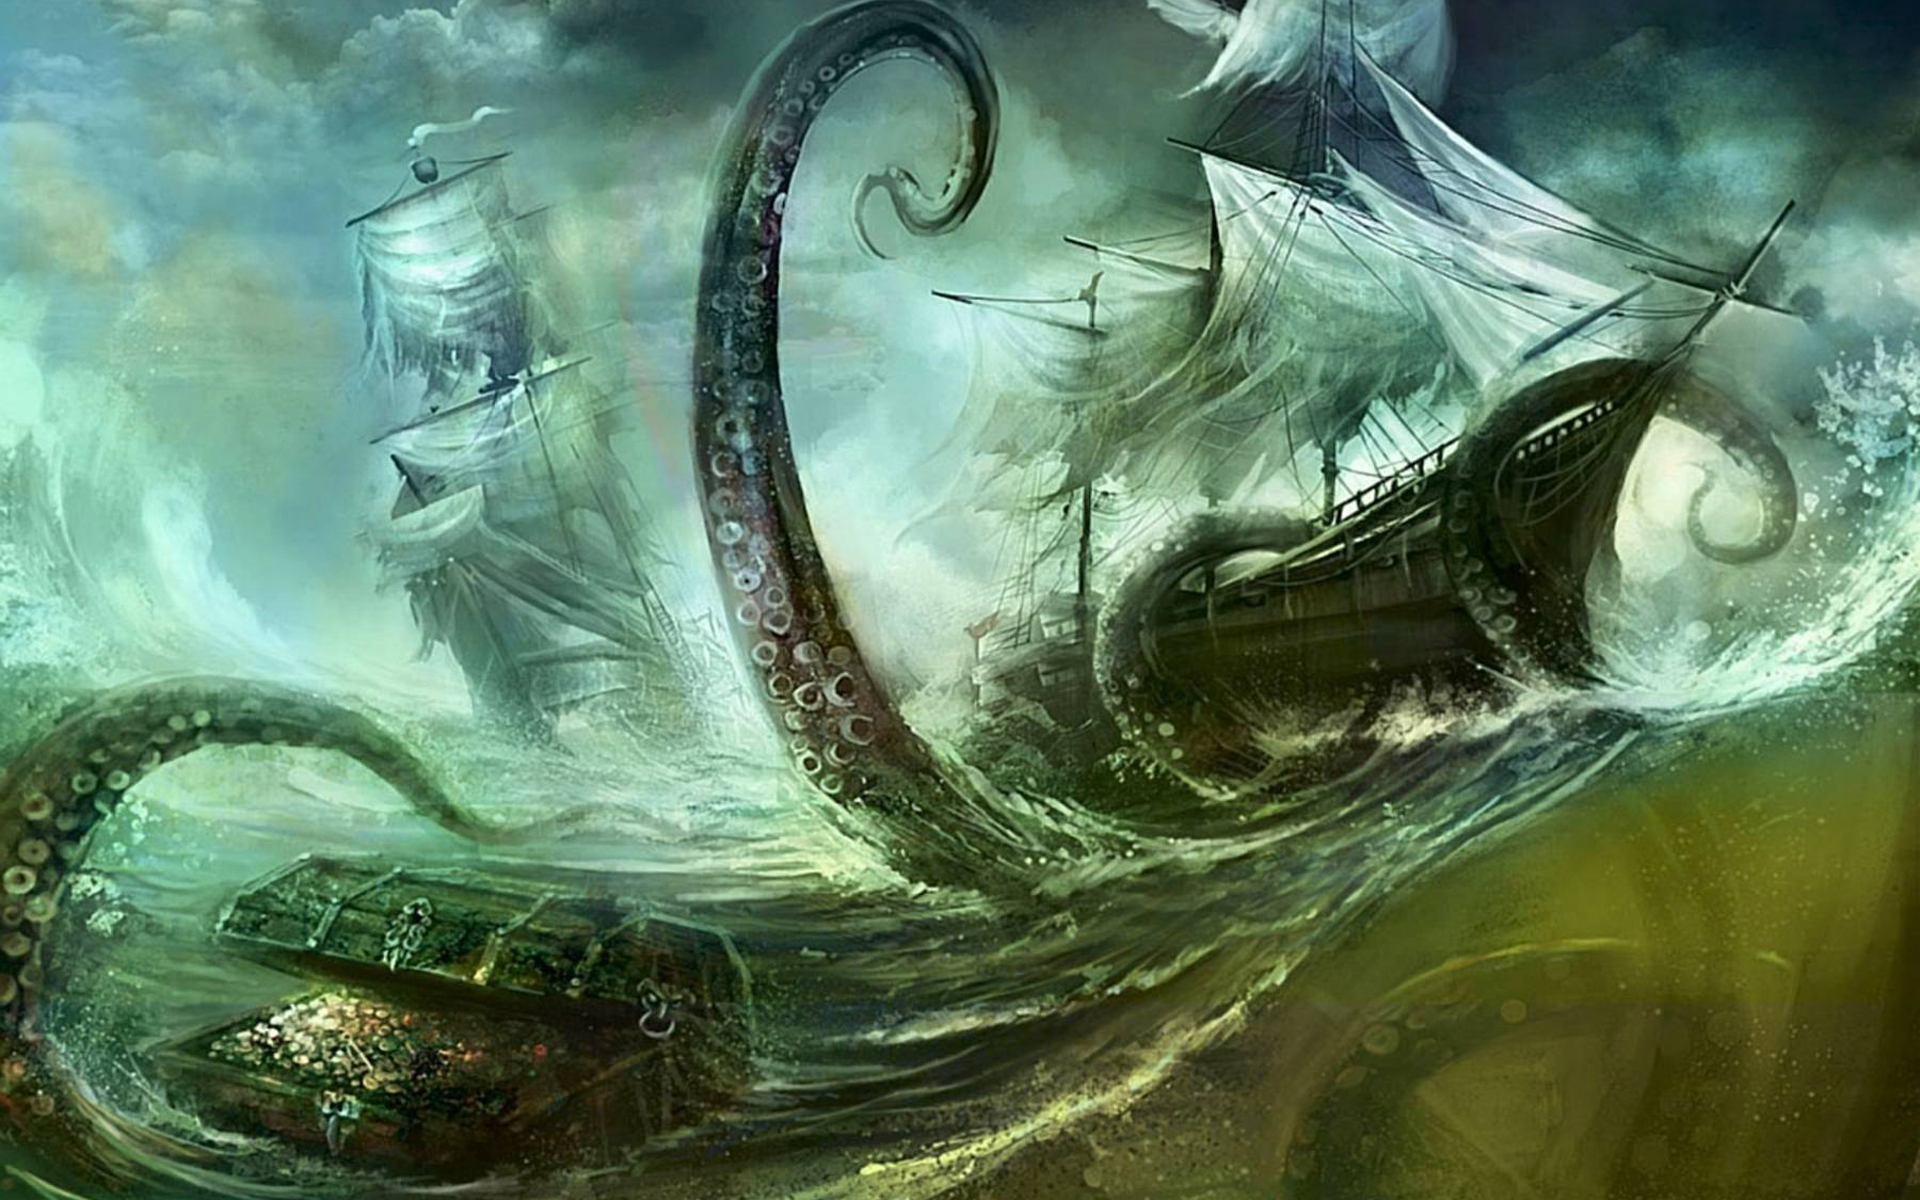 download next wallpaper prev wallpaperGiant Sea Monster Wallpaper